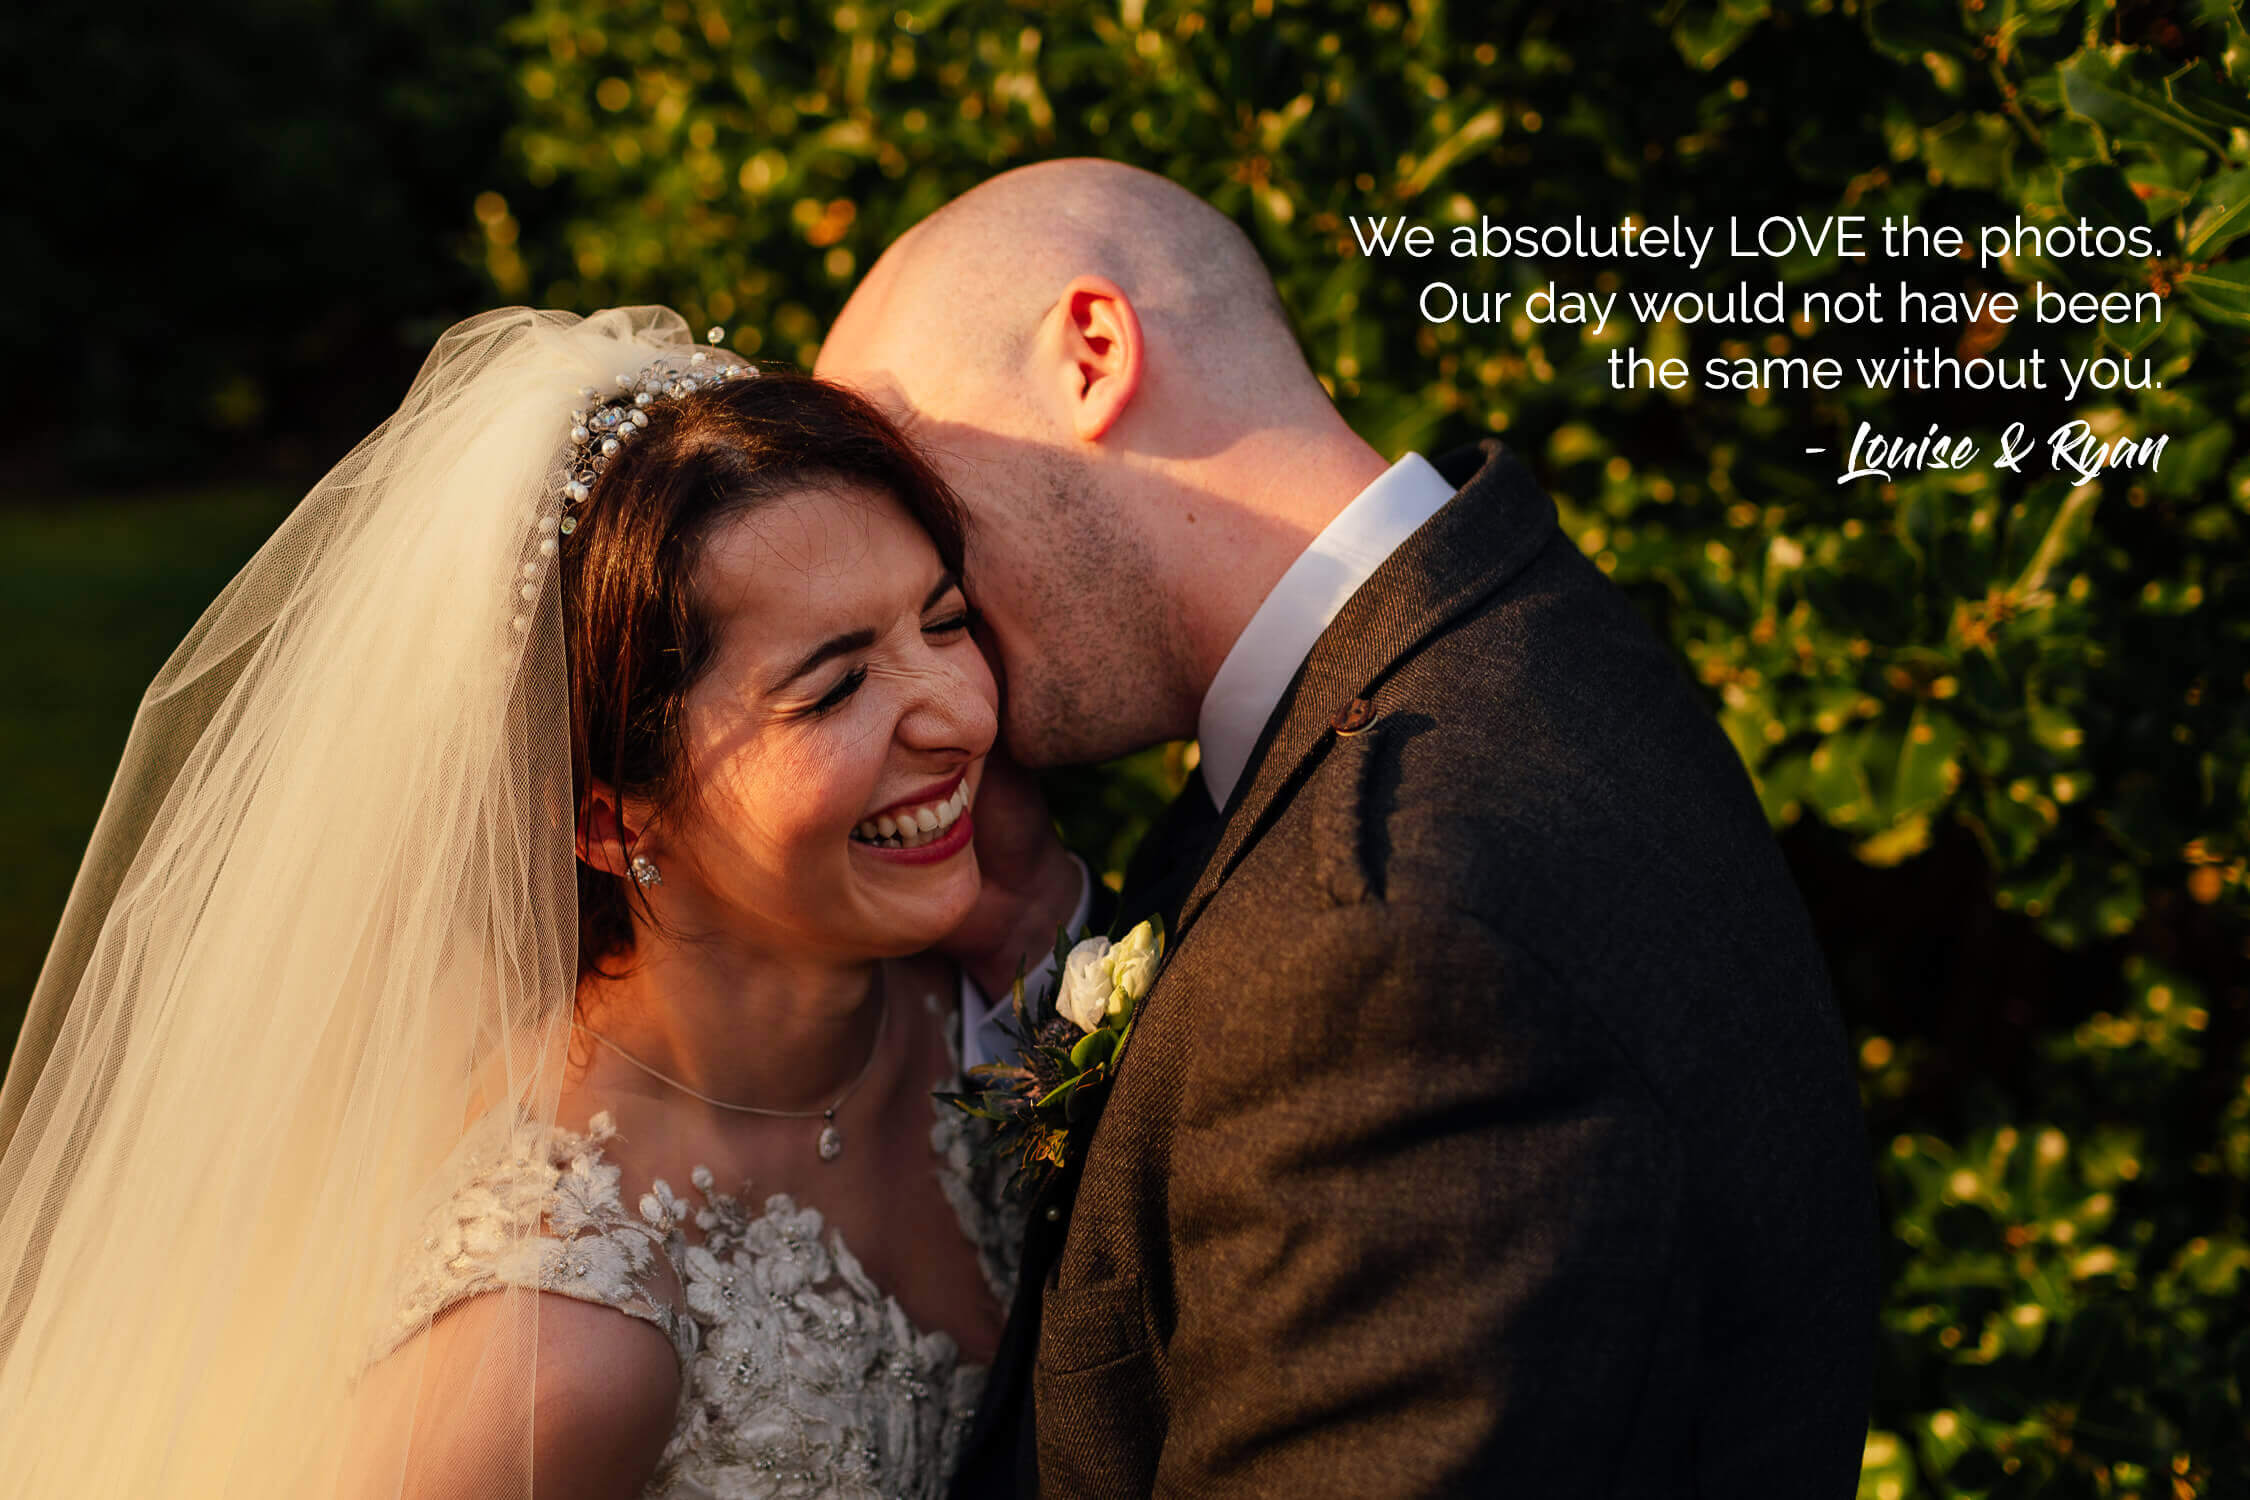 colourful wedding photographer glasgow fotomaki photography reviews feedback from wedding clients bride groom laughing in garden at sherbrooke castle hotel